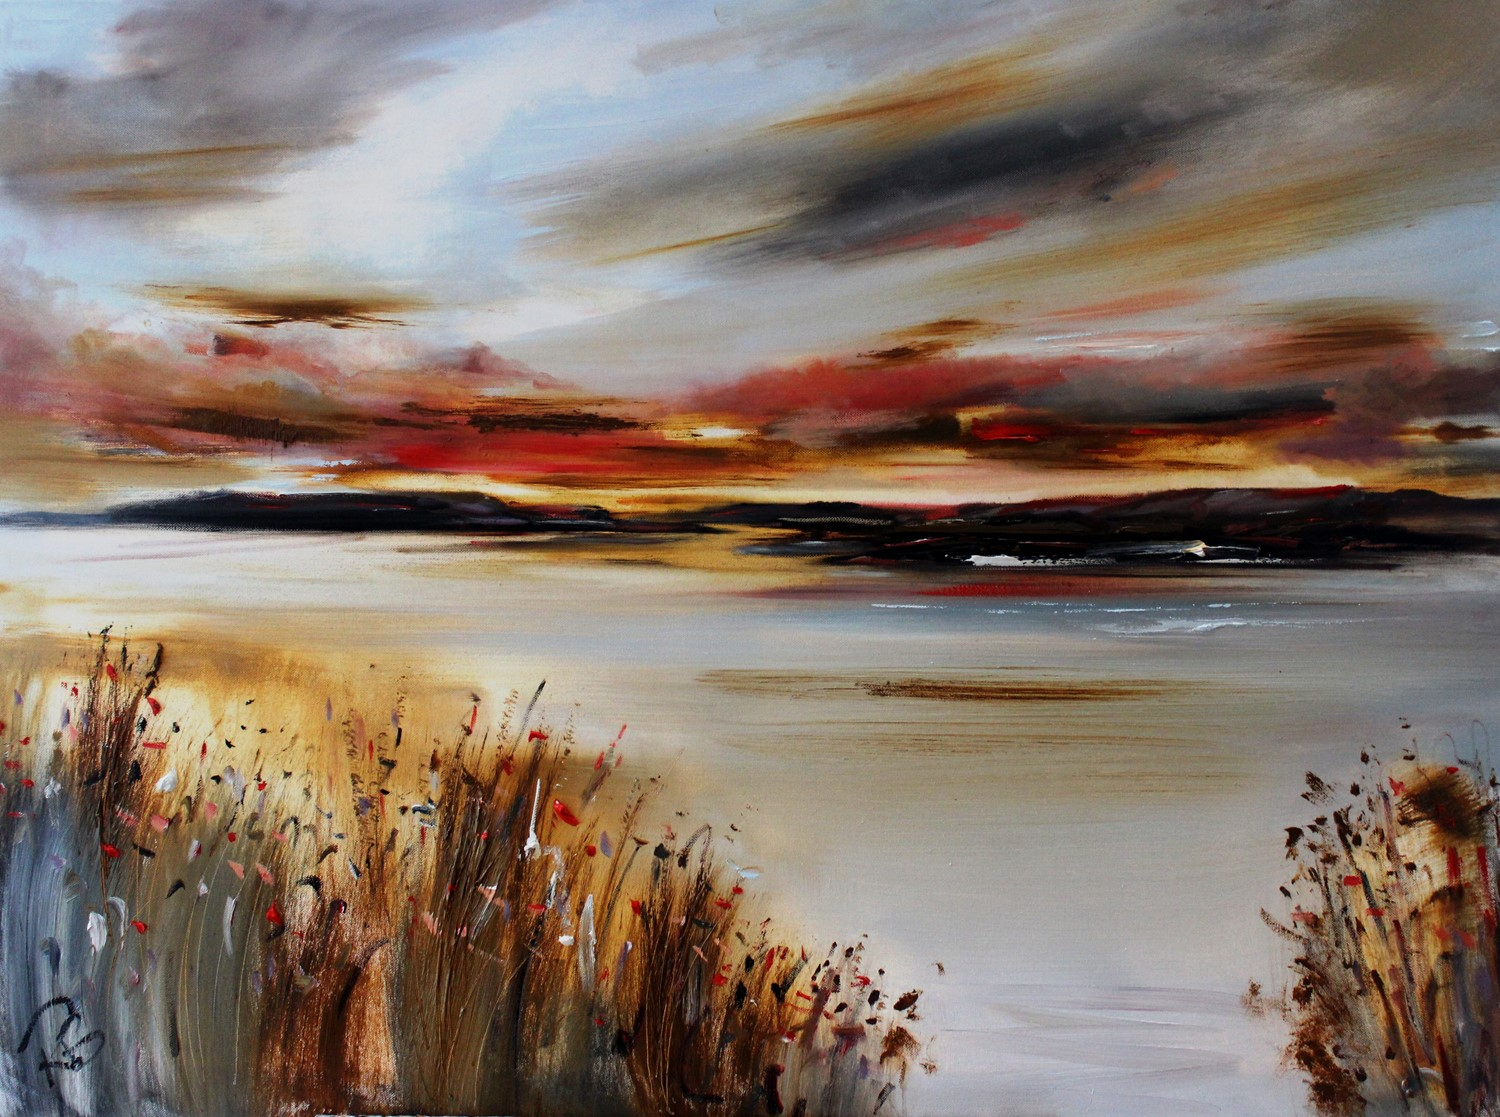 'A Glow over the Isles' by artist Rosanne Barr